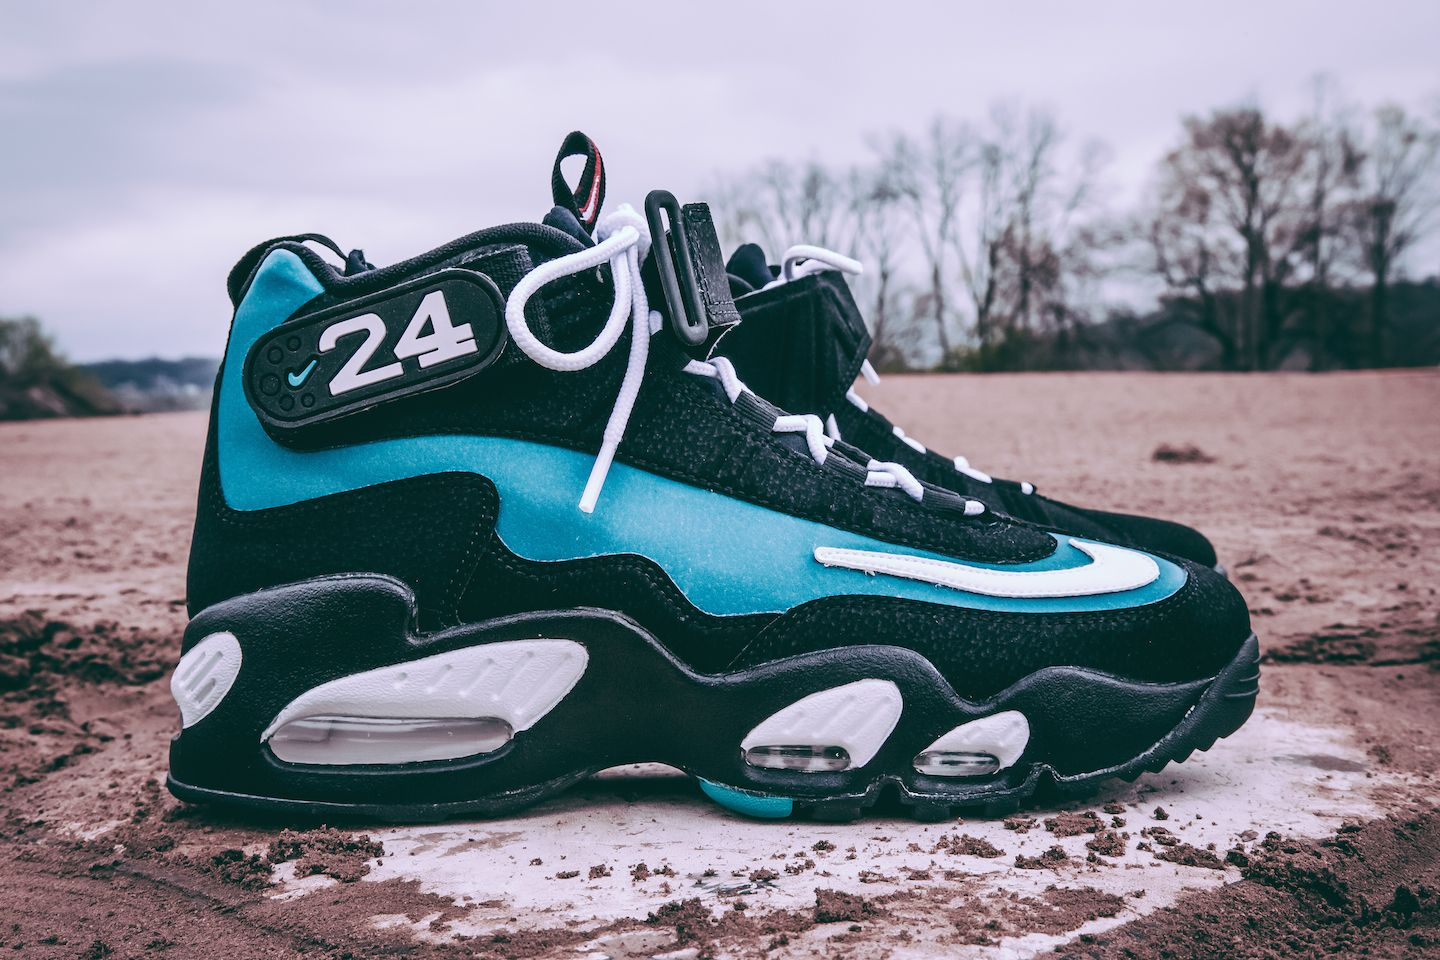 official photos 091db 946f0 Nike Air Griffey Max 1 Freshwater